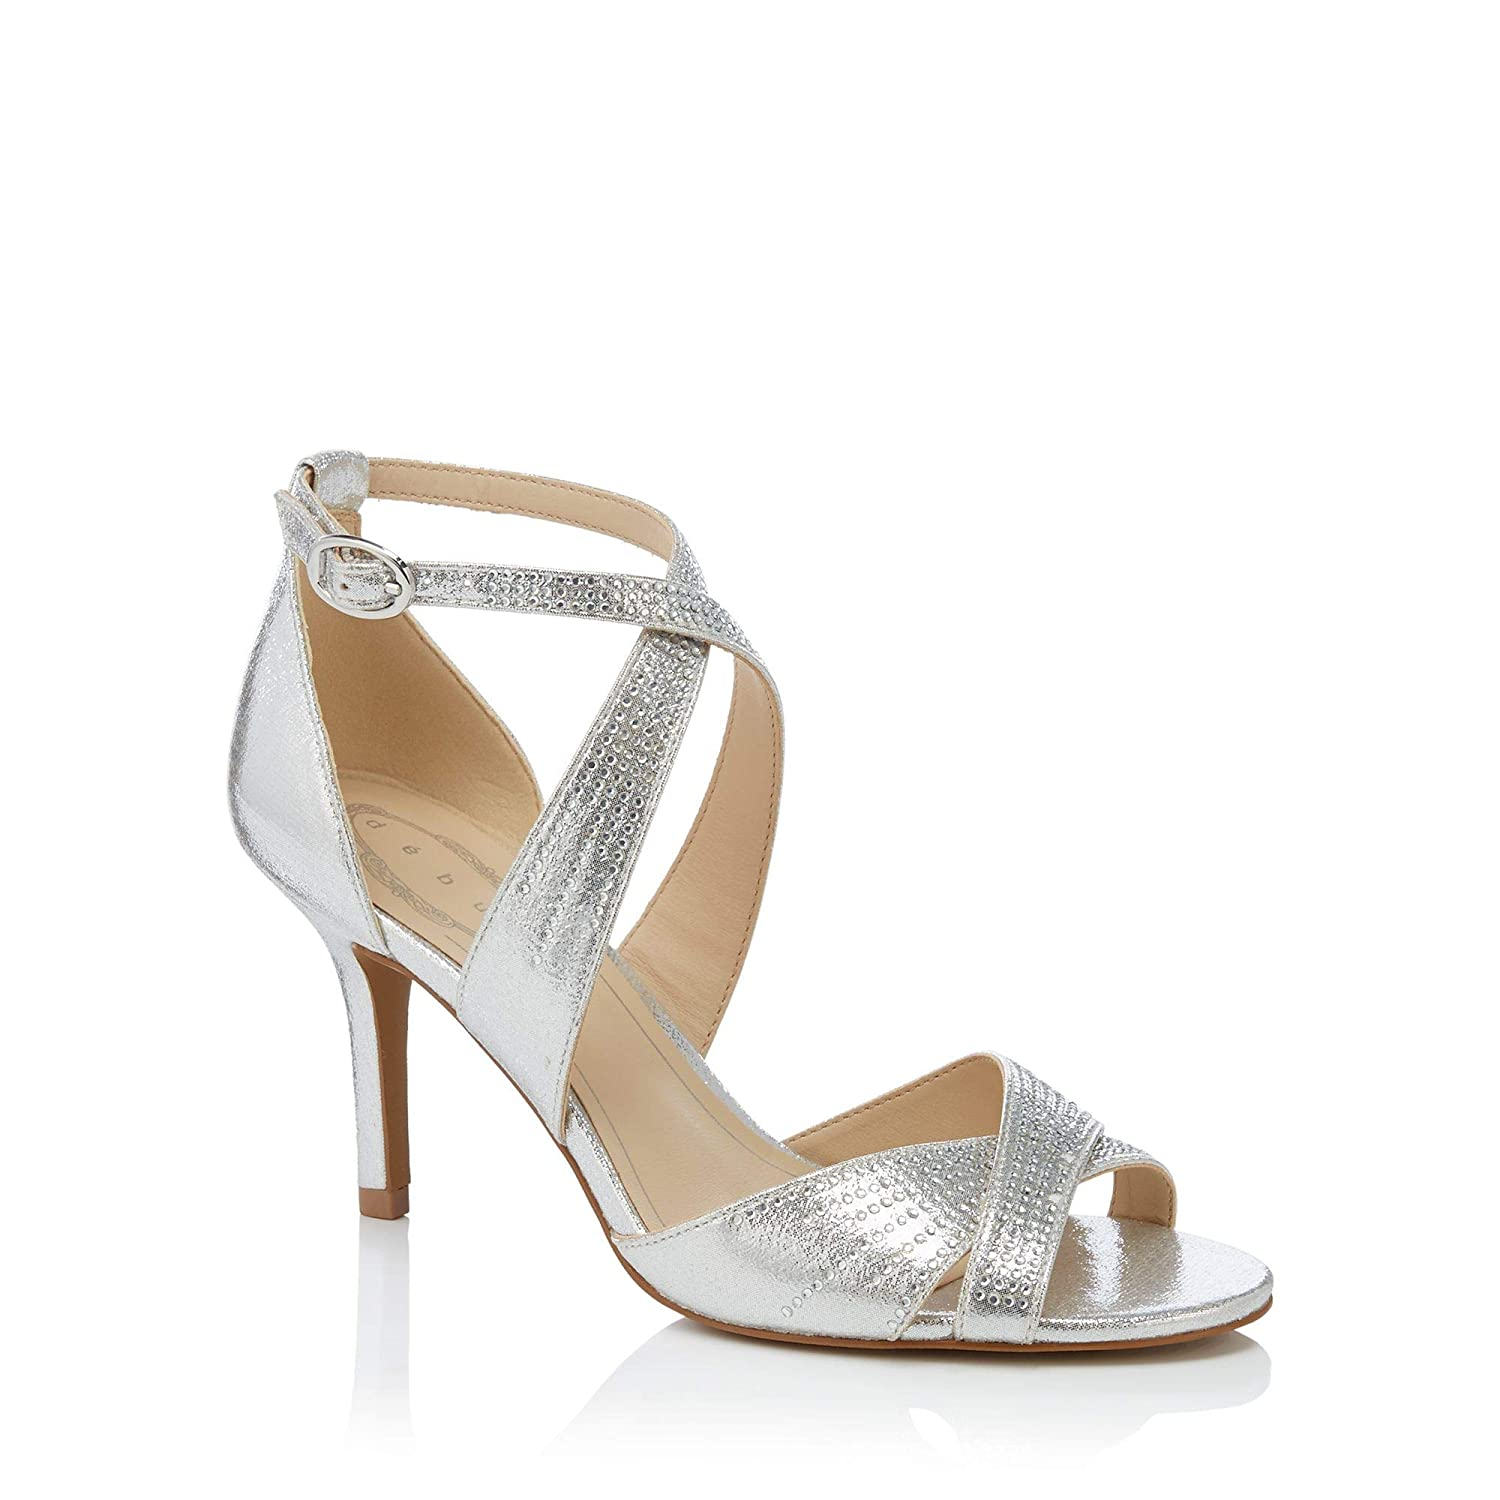 12d1ef6dc10 Debut Womens Silver Gemstone  Donte  High Stiletto Heel Ankle Strap Shoes   Amazon.co.uk  Shoes   Bags